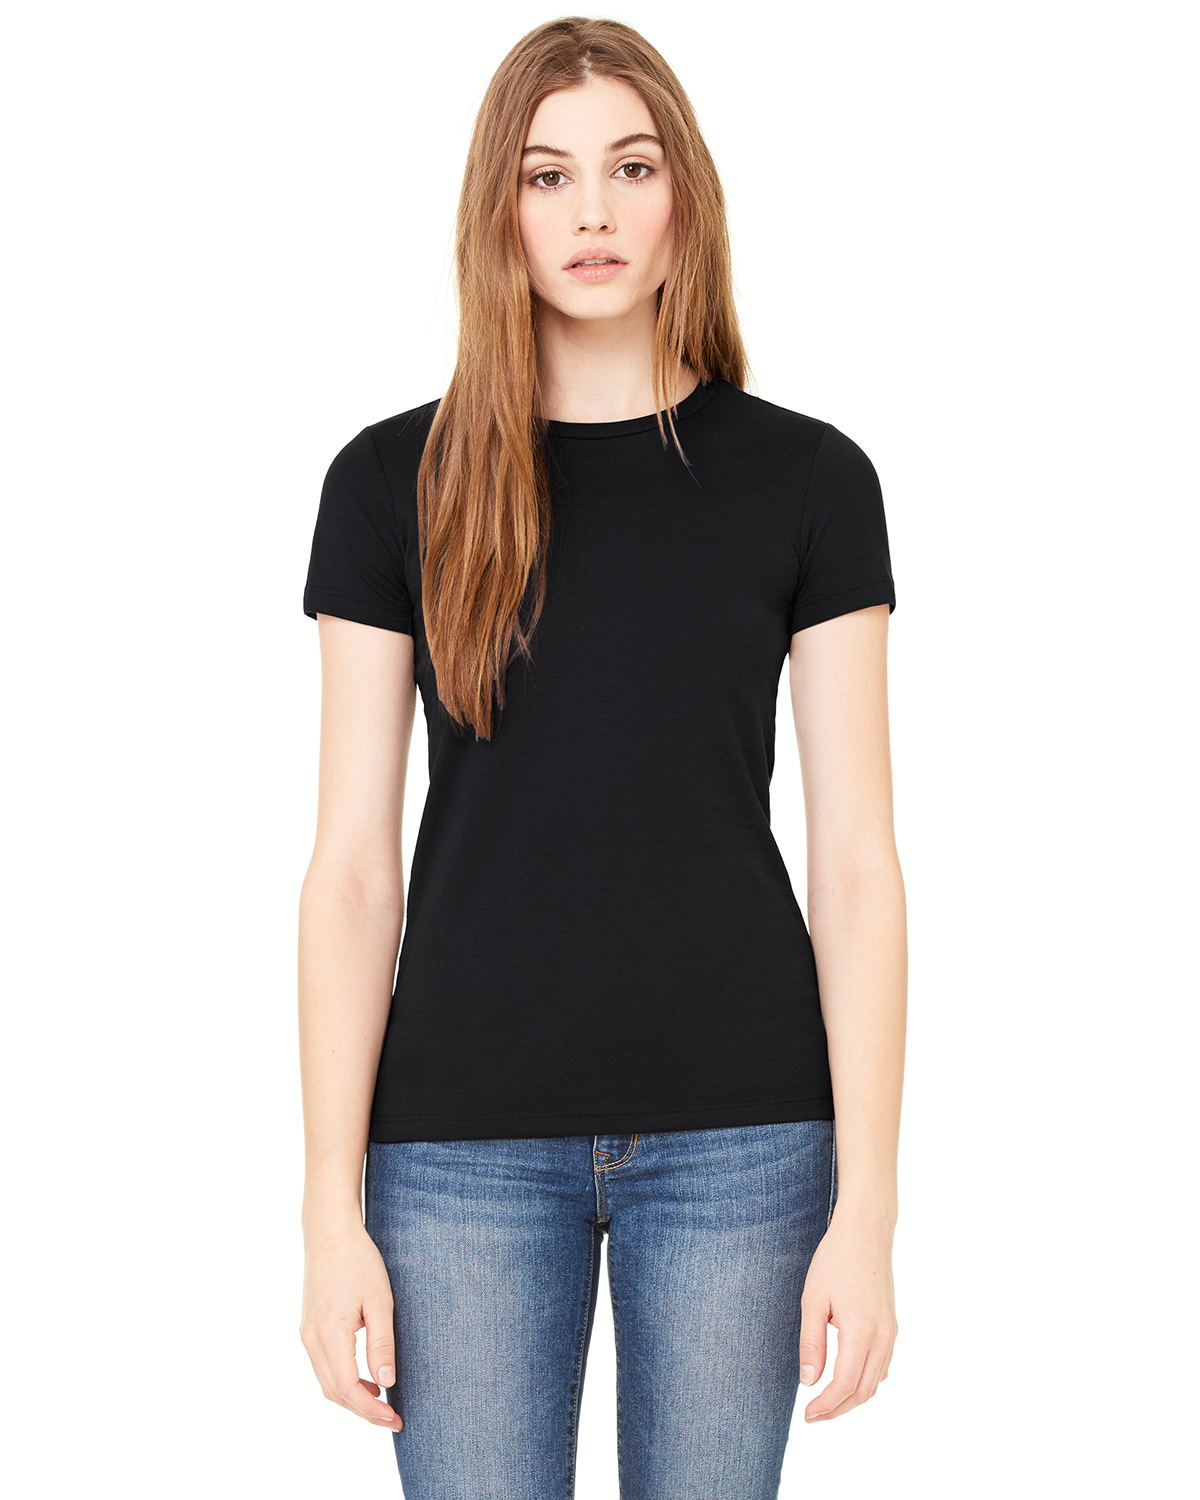 Bella 6650 Ladies 3.6 oz. Poly-Cotton Short-Sleeve T-Shirt